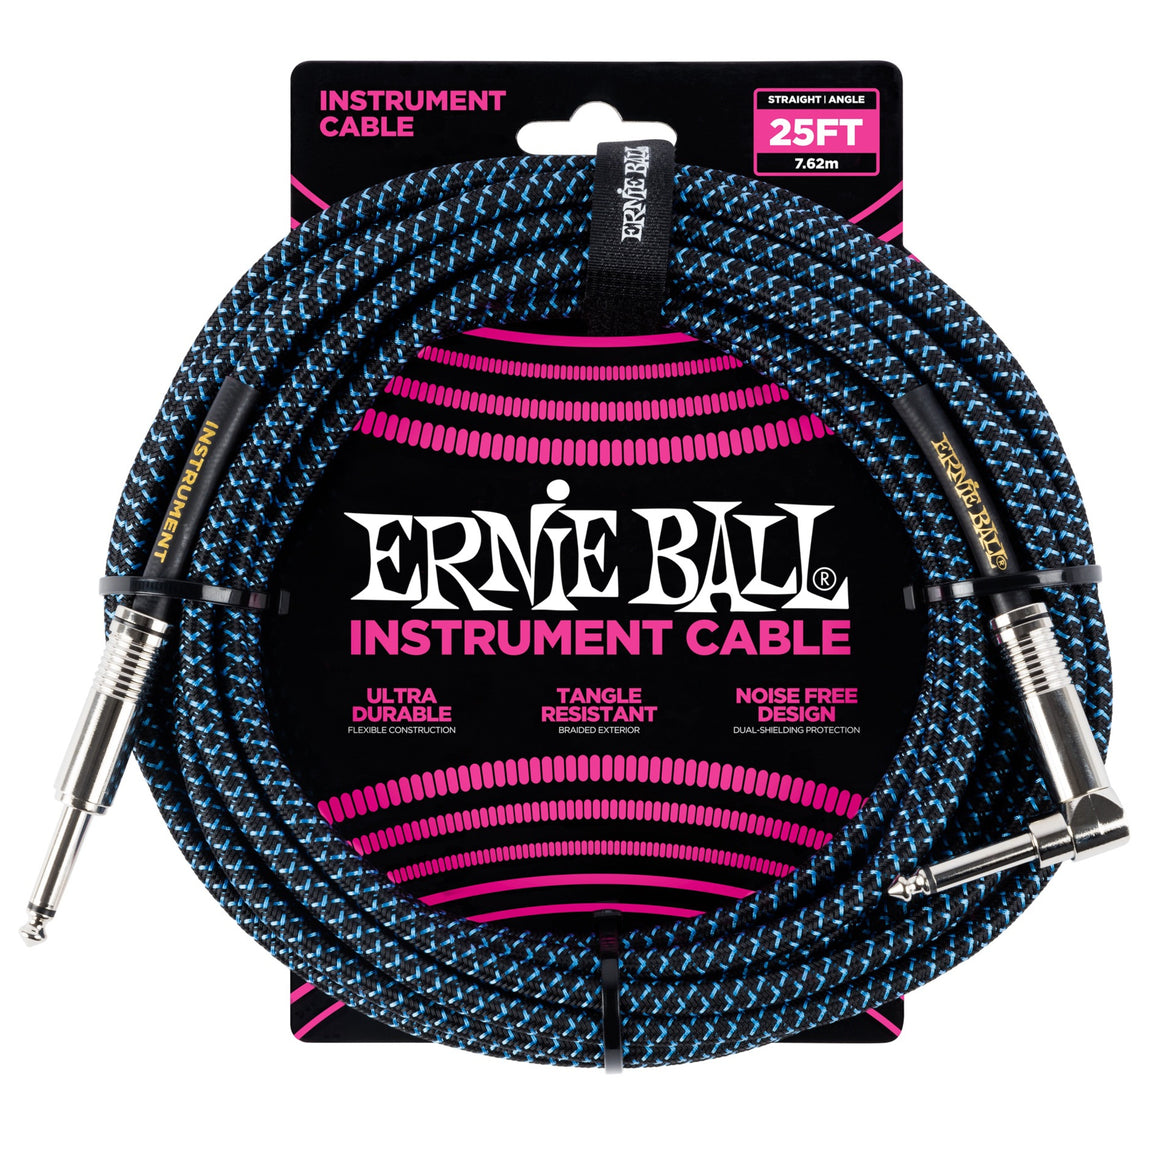 Ernie Ball 6060 25ft Blue/Black Straight/Angle Instrument Cable